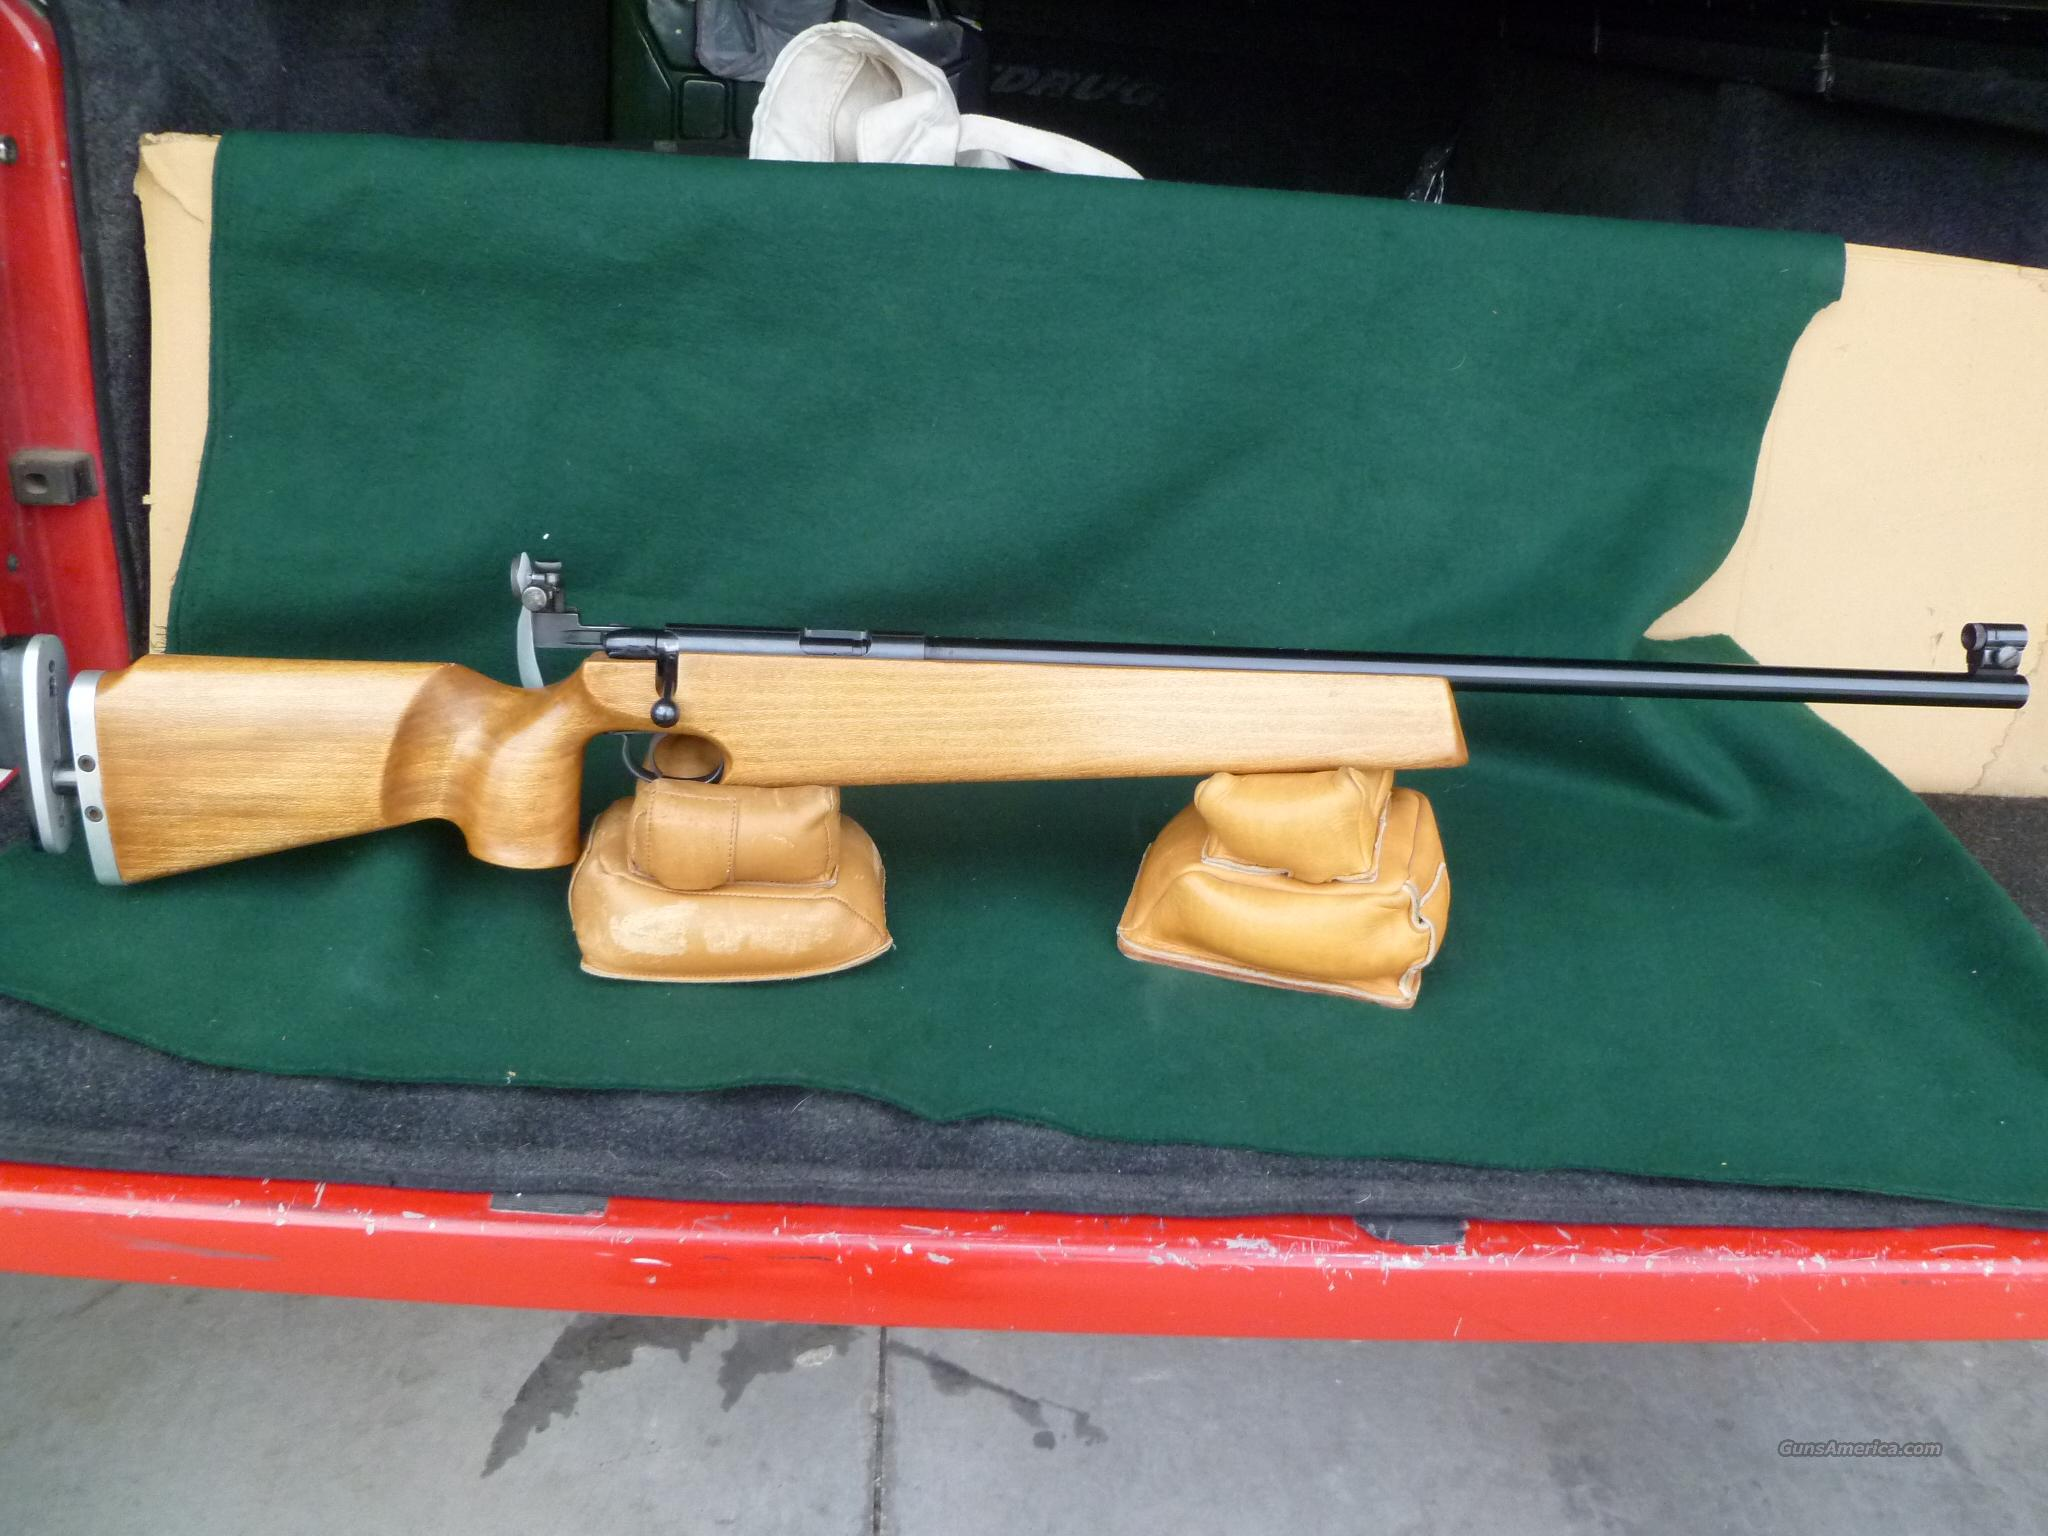 Remington 540 XR Match rifle, 540xr, SCARCE rifle!  Guns > Rifles > Remington Rifles - Modern > .22 Rimfire Models